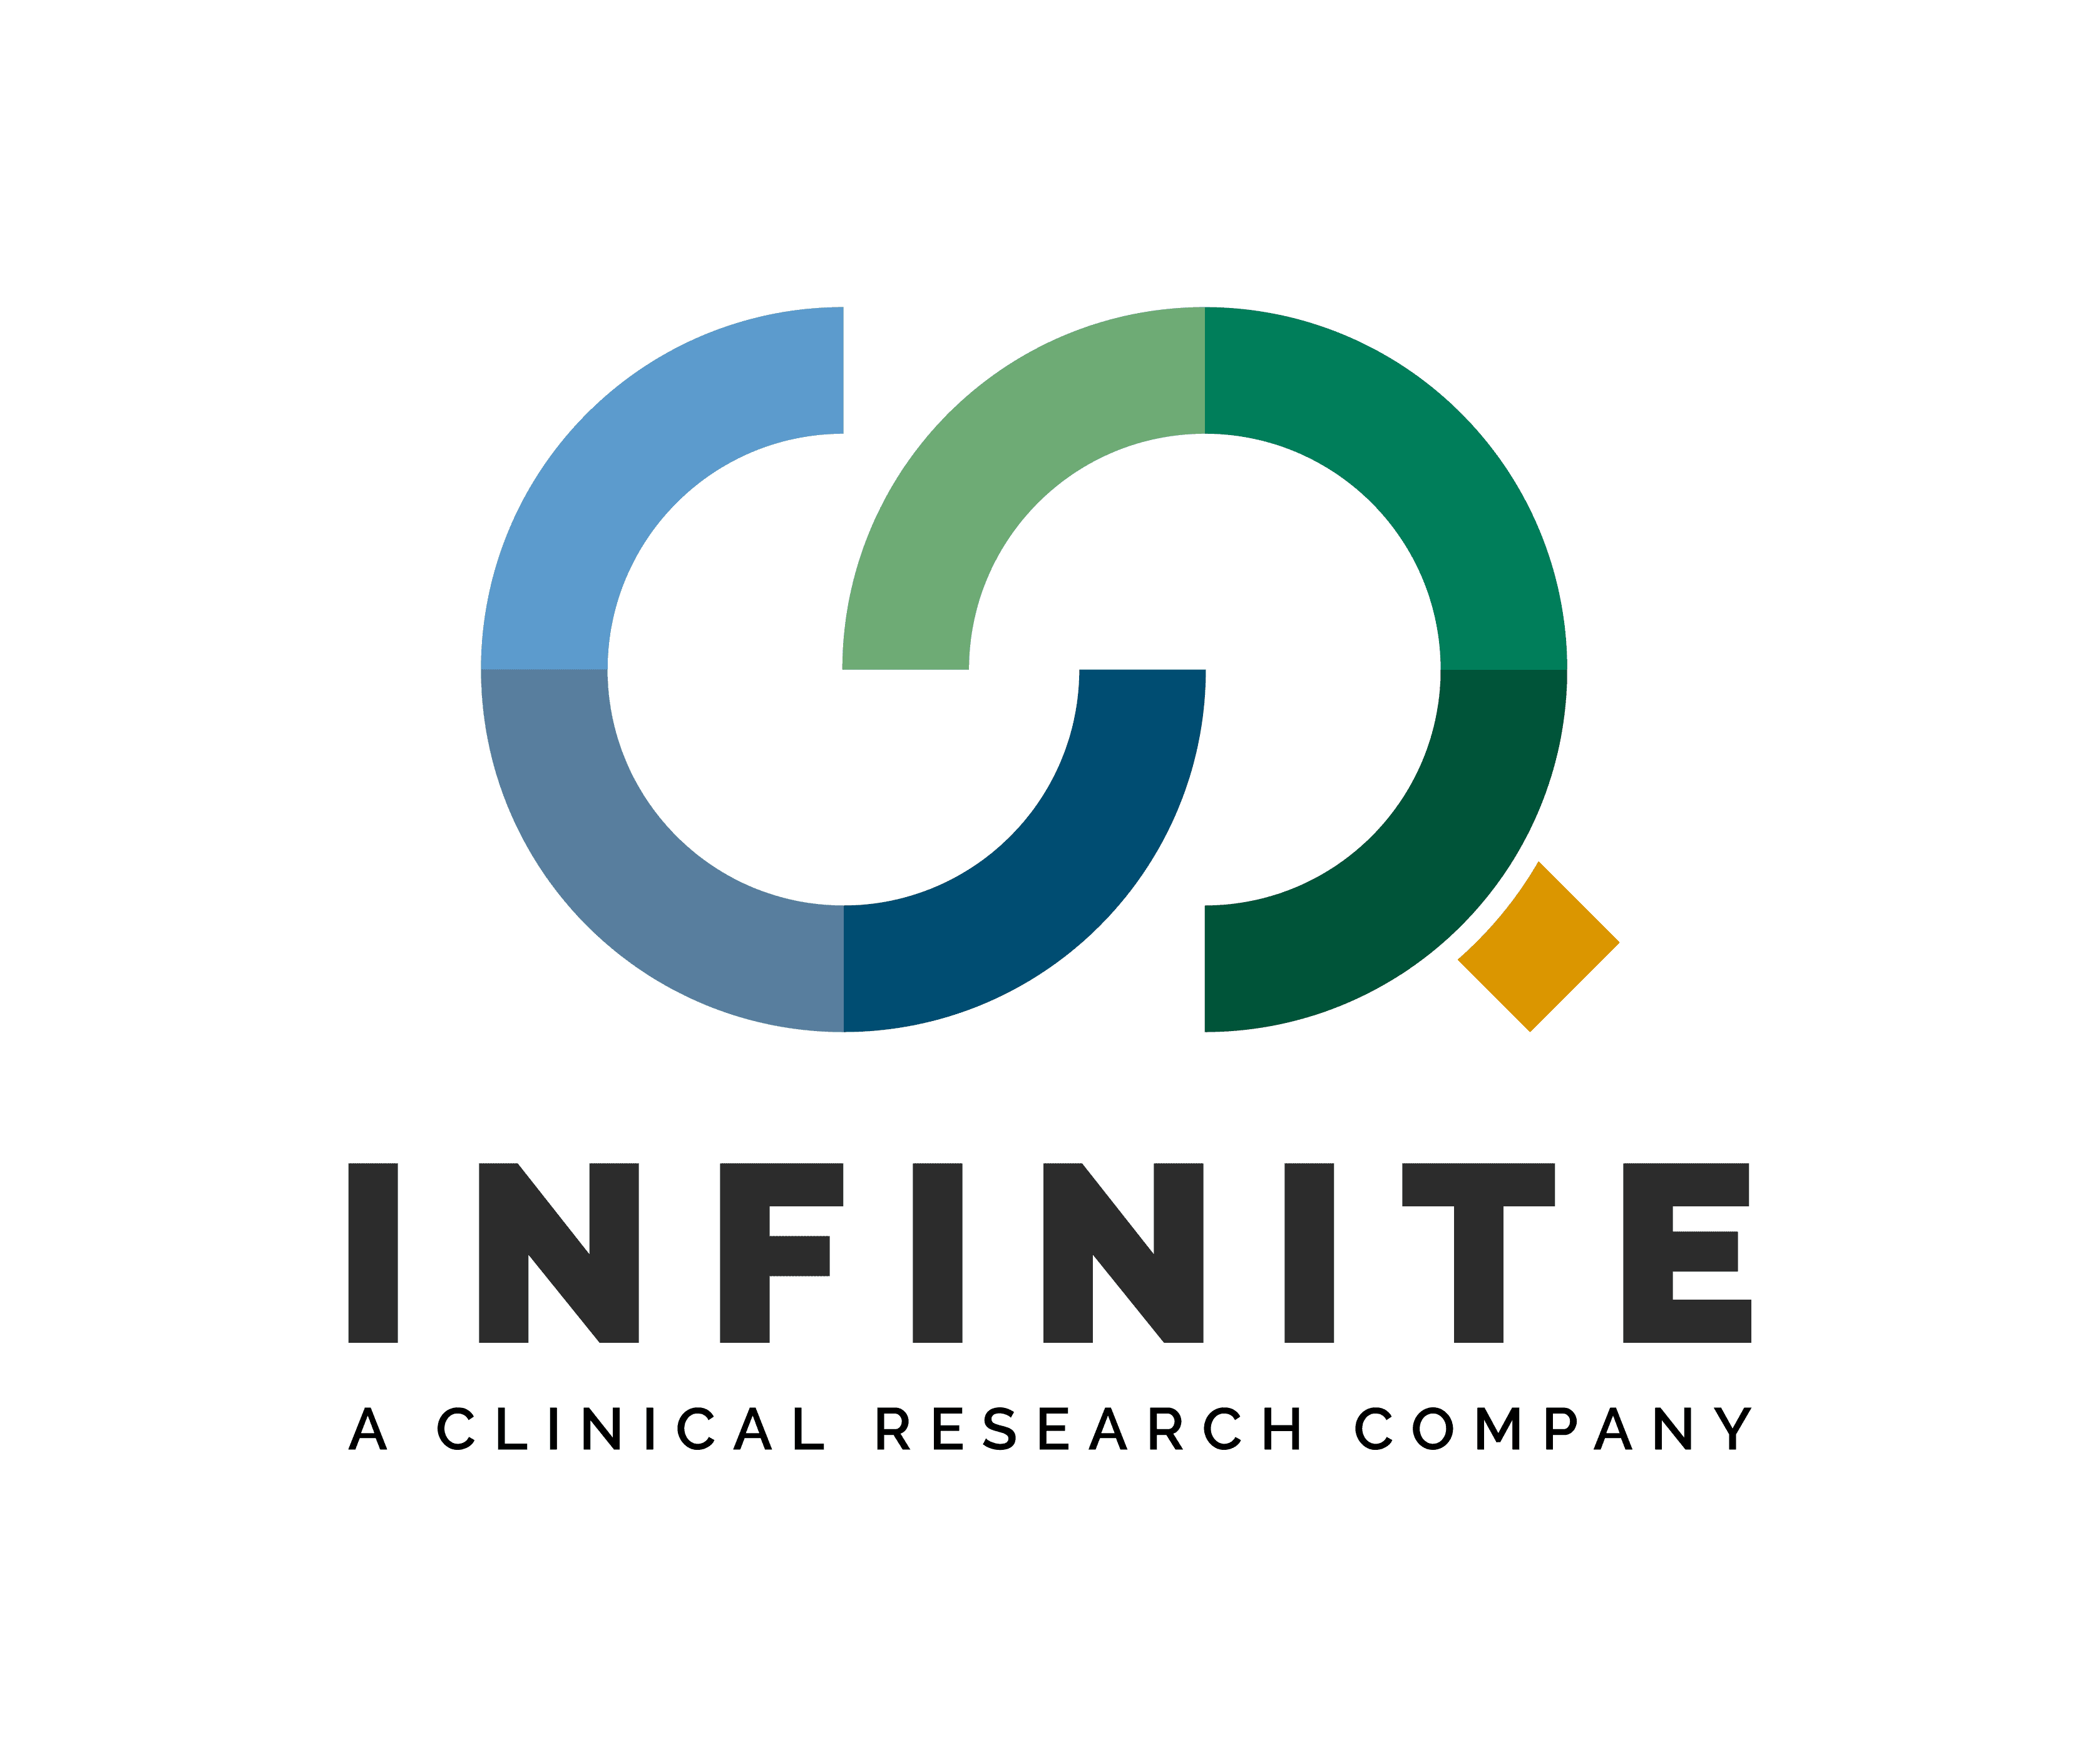 infinite clinical research logo big